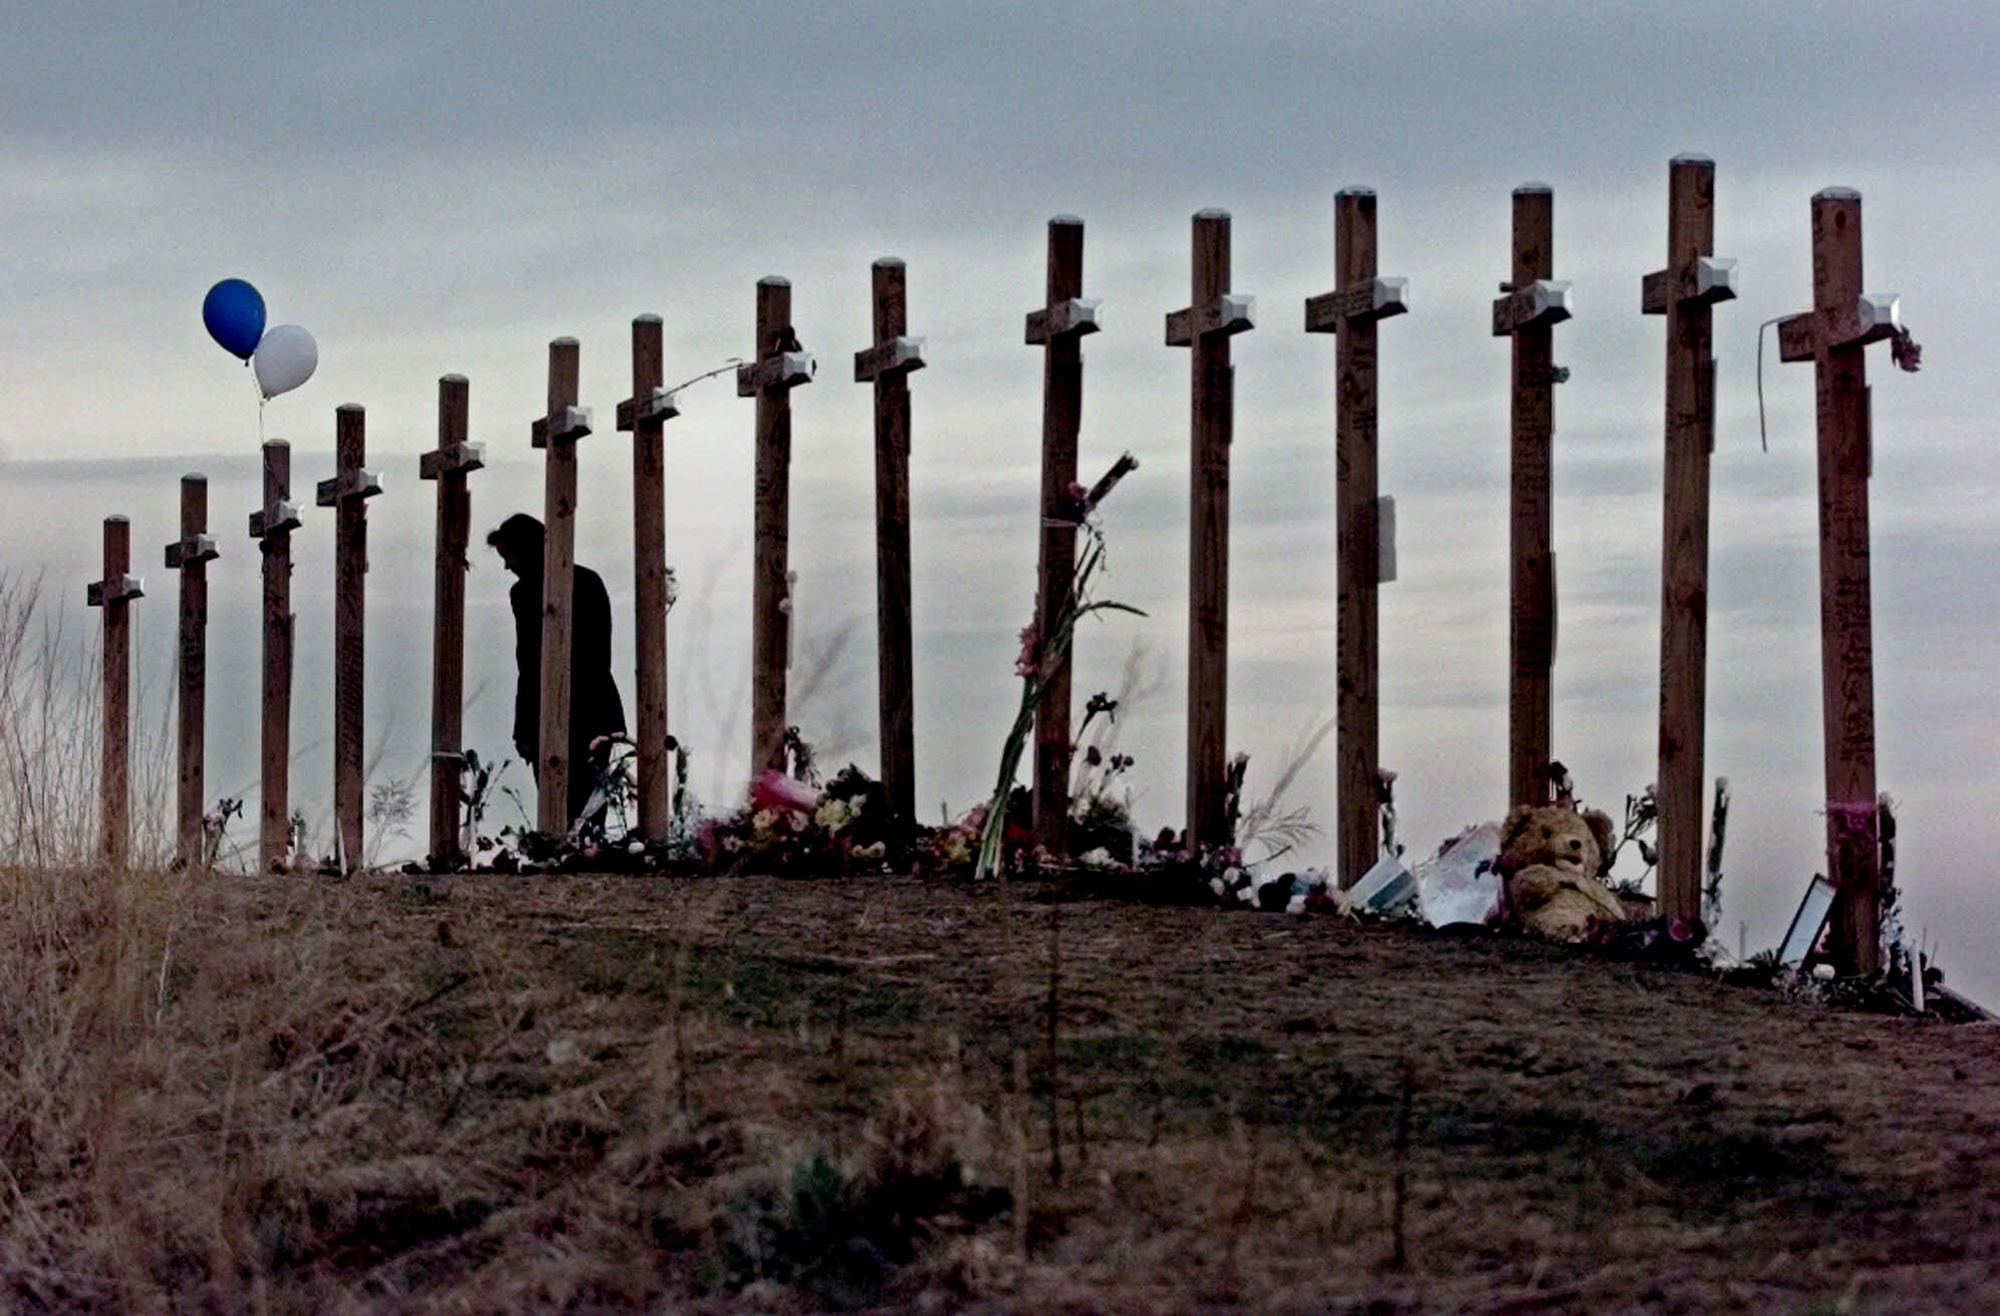 The 15 Columbine Shooting memorial crosses. via www.thenypost.files.wordpress.com